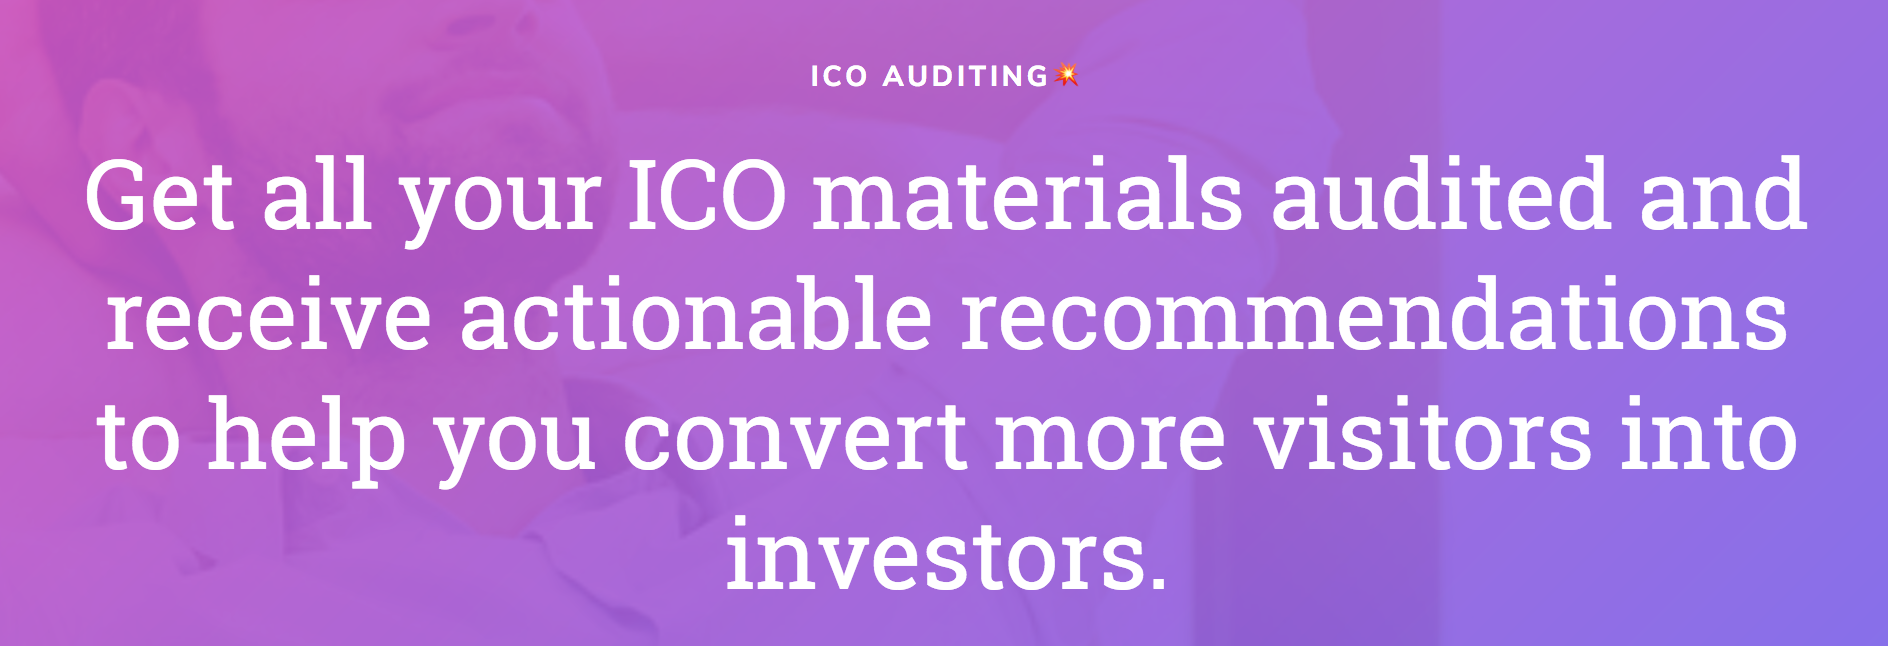 ico marketing audit